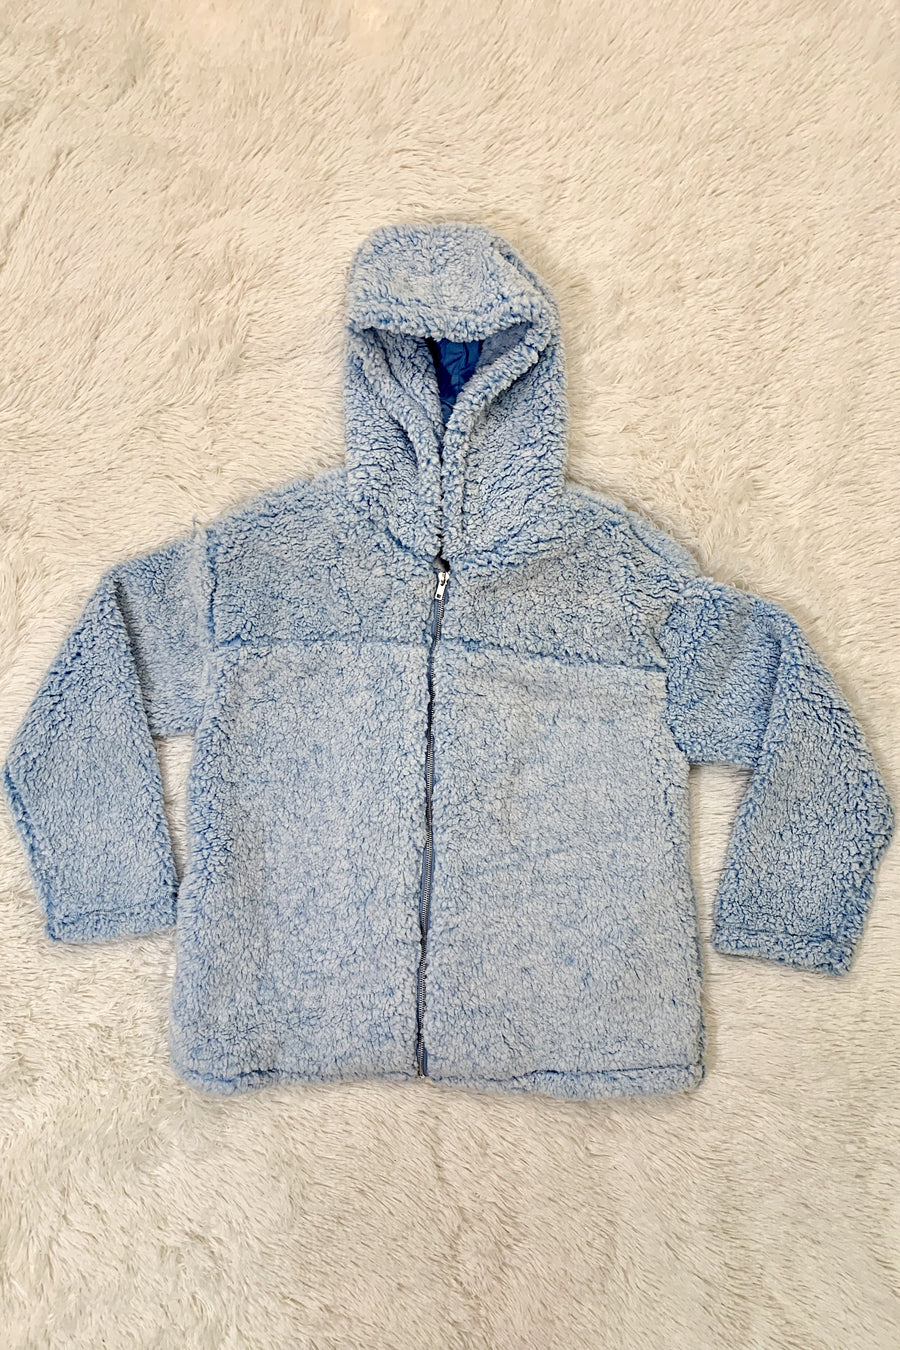 Candy Paint Sherpa Hoodie with Zipper - Ice Blue